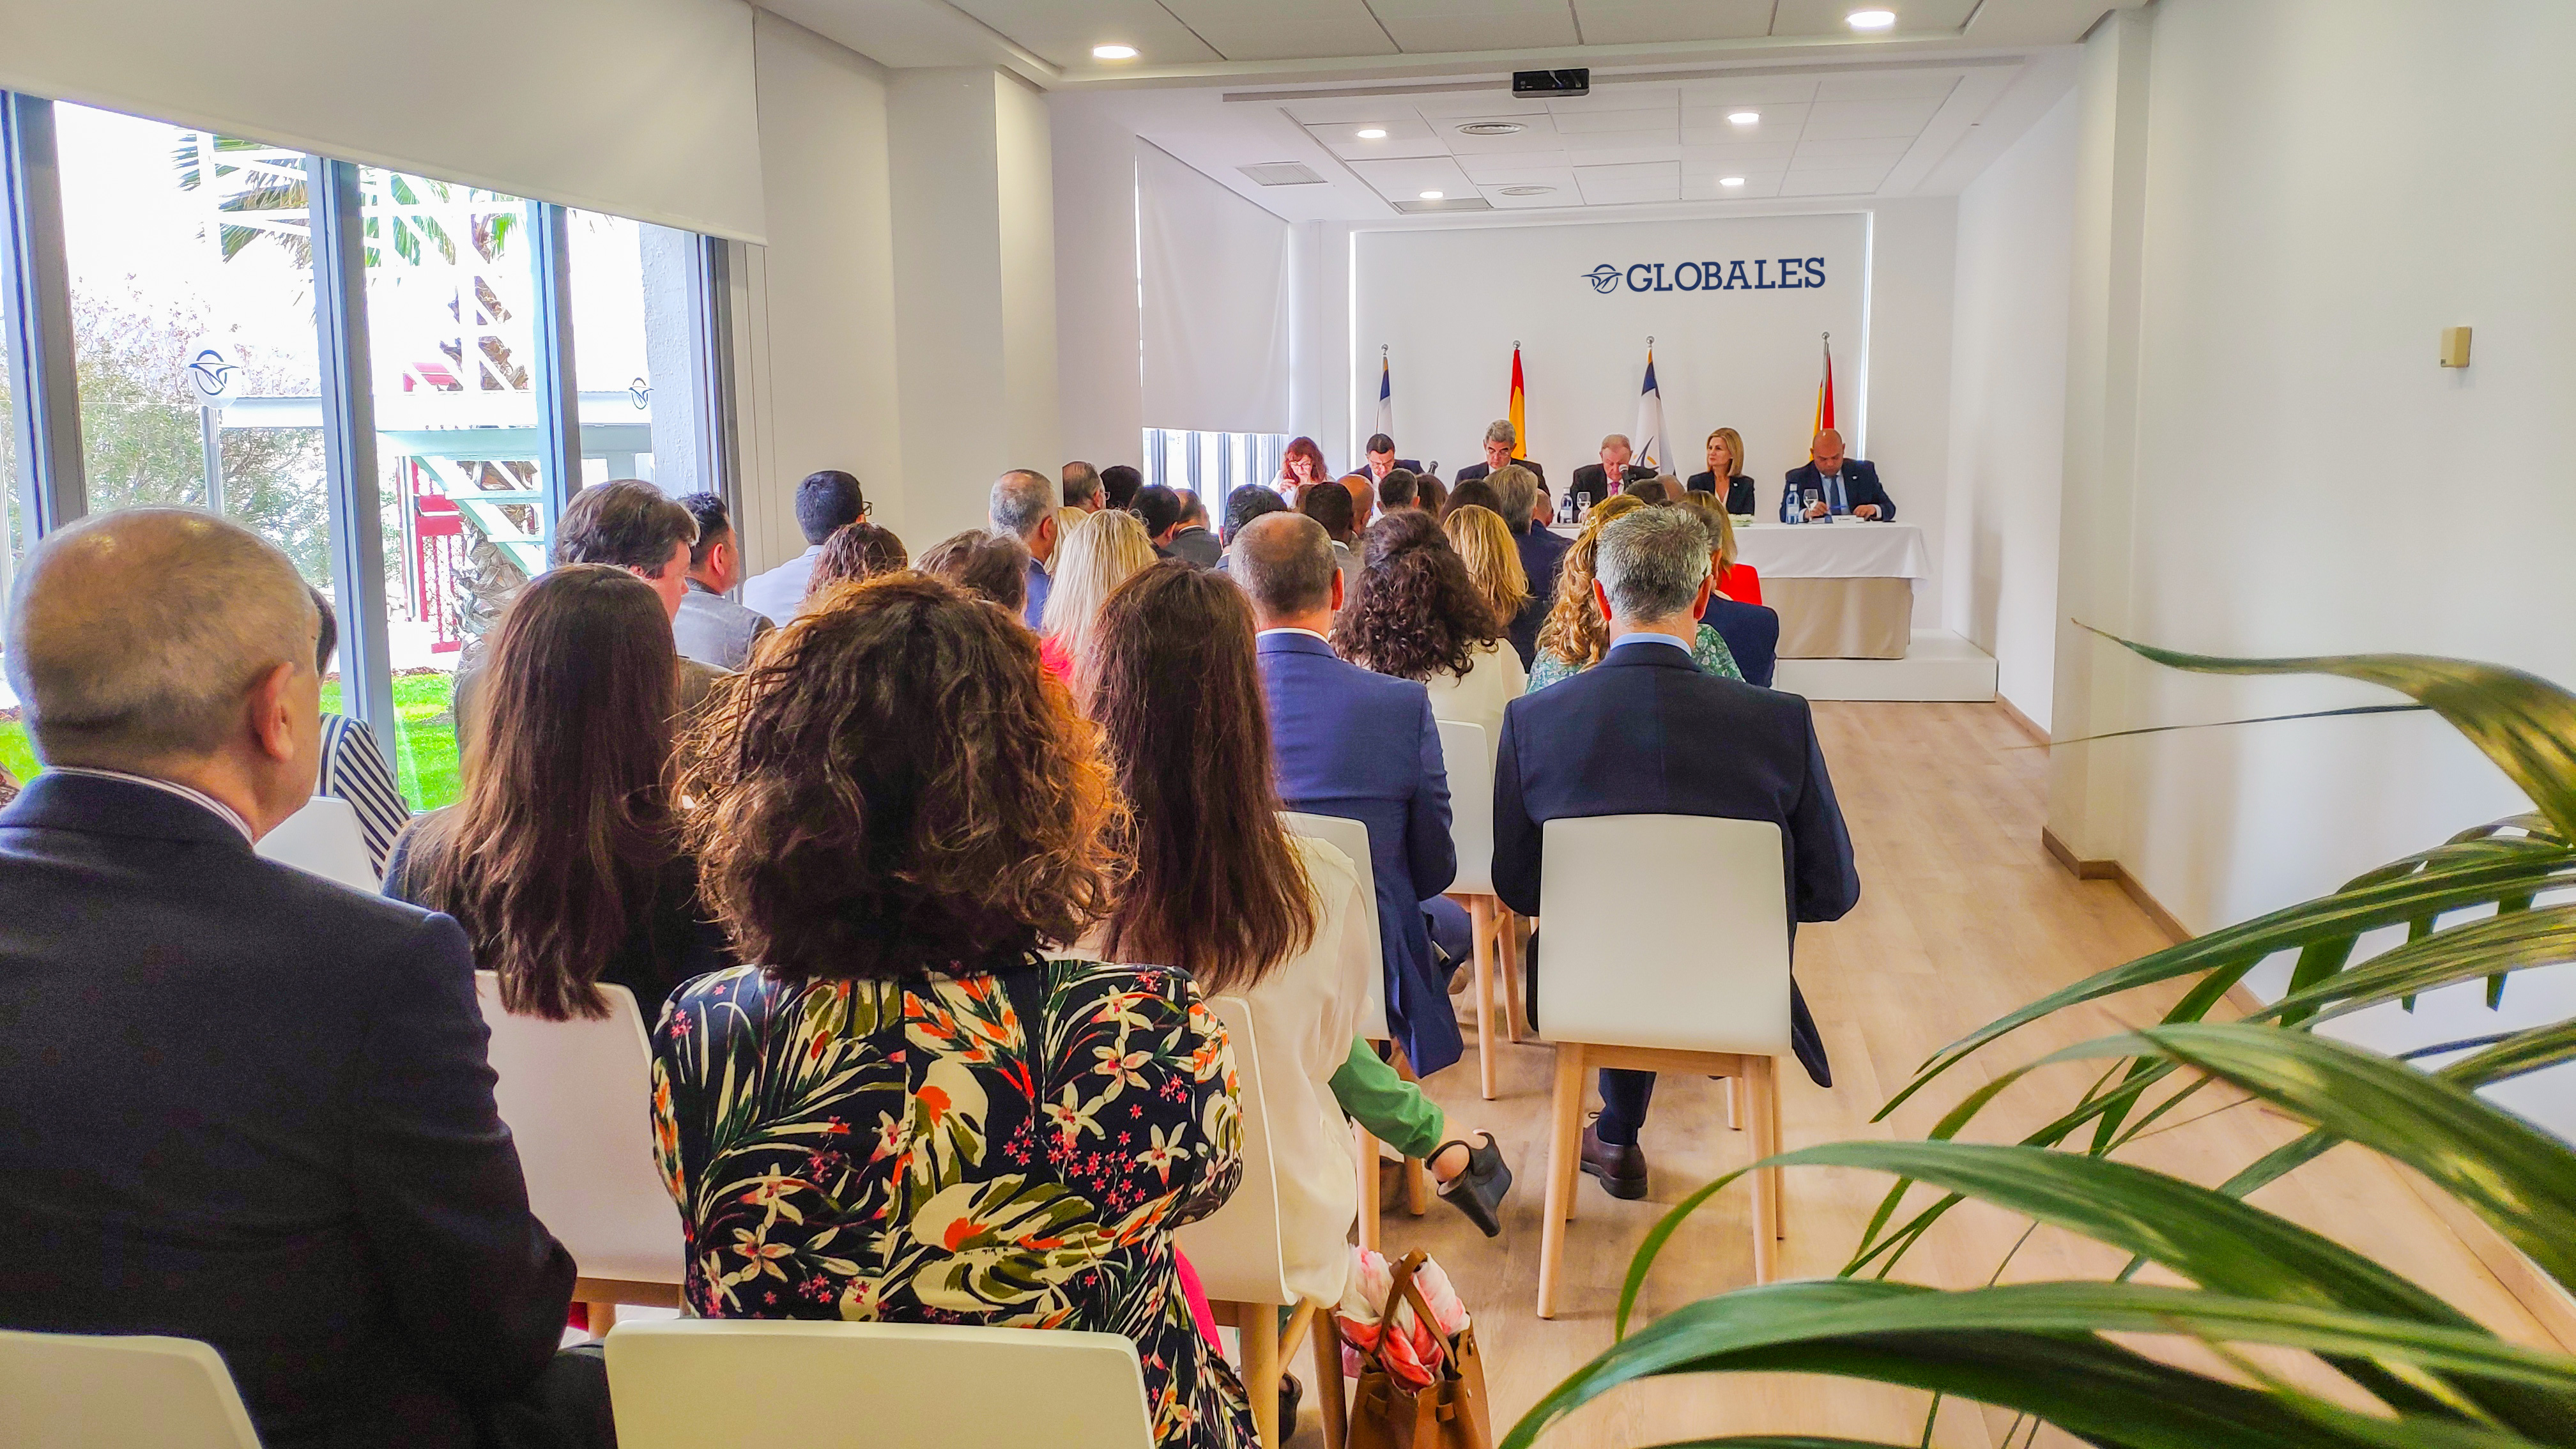 Image Globales celebrates its annual pre-season meeting.